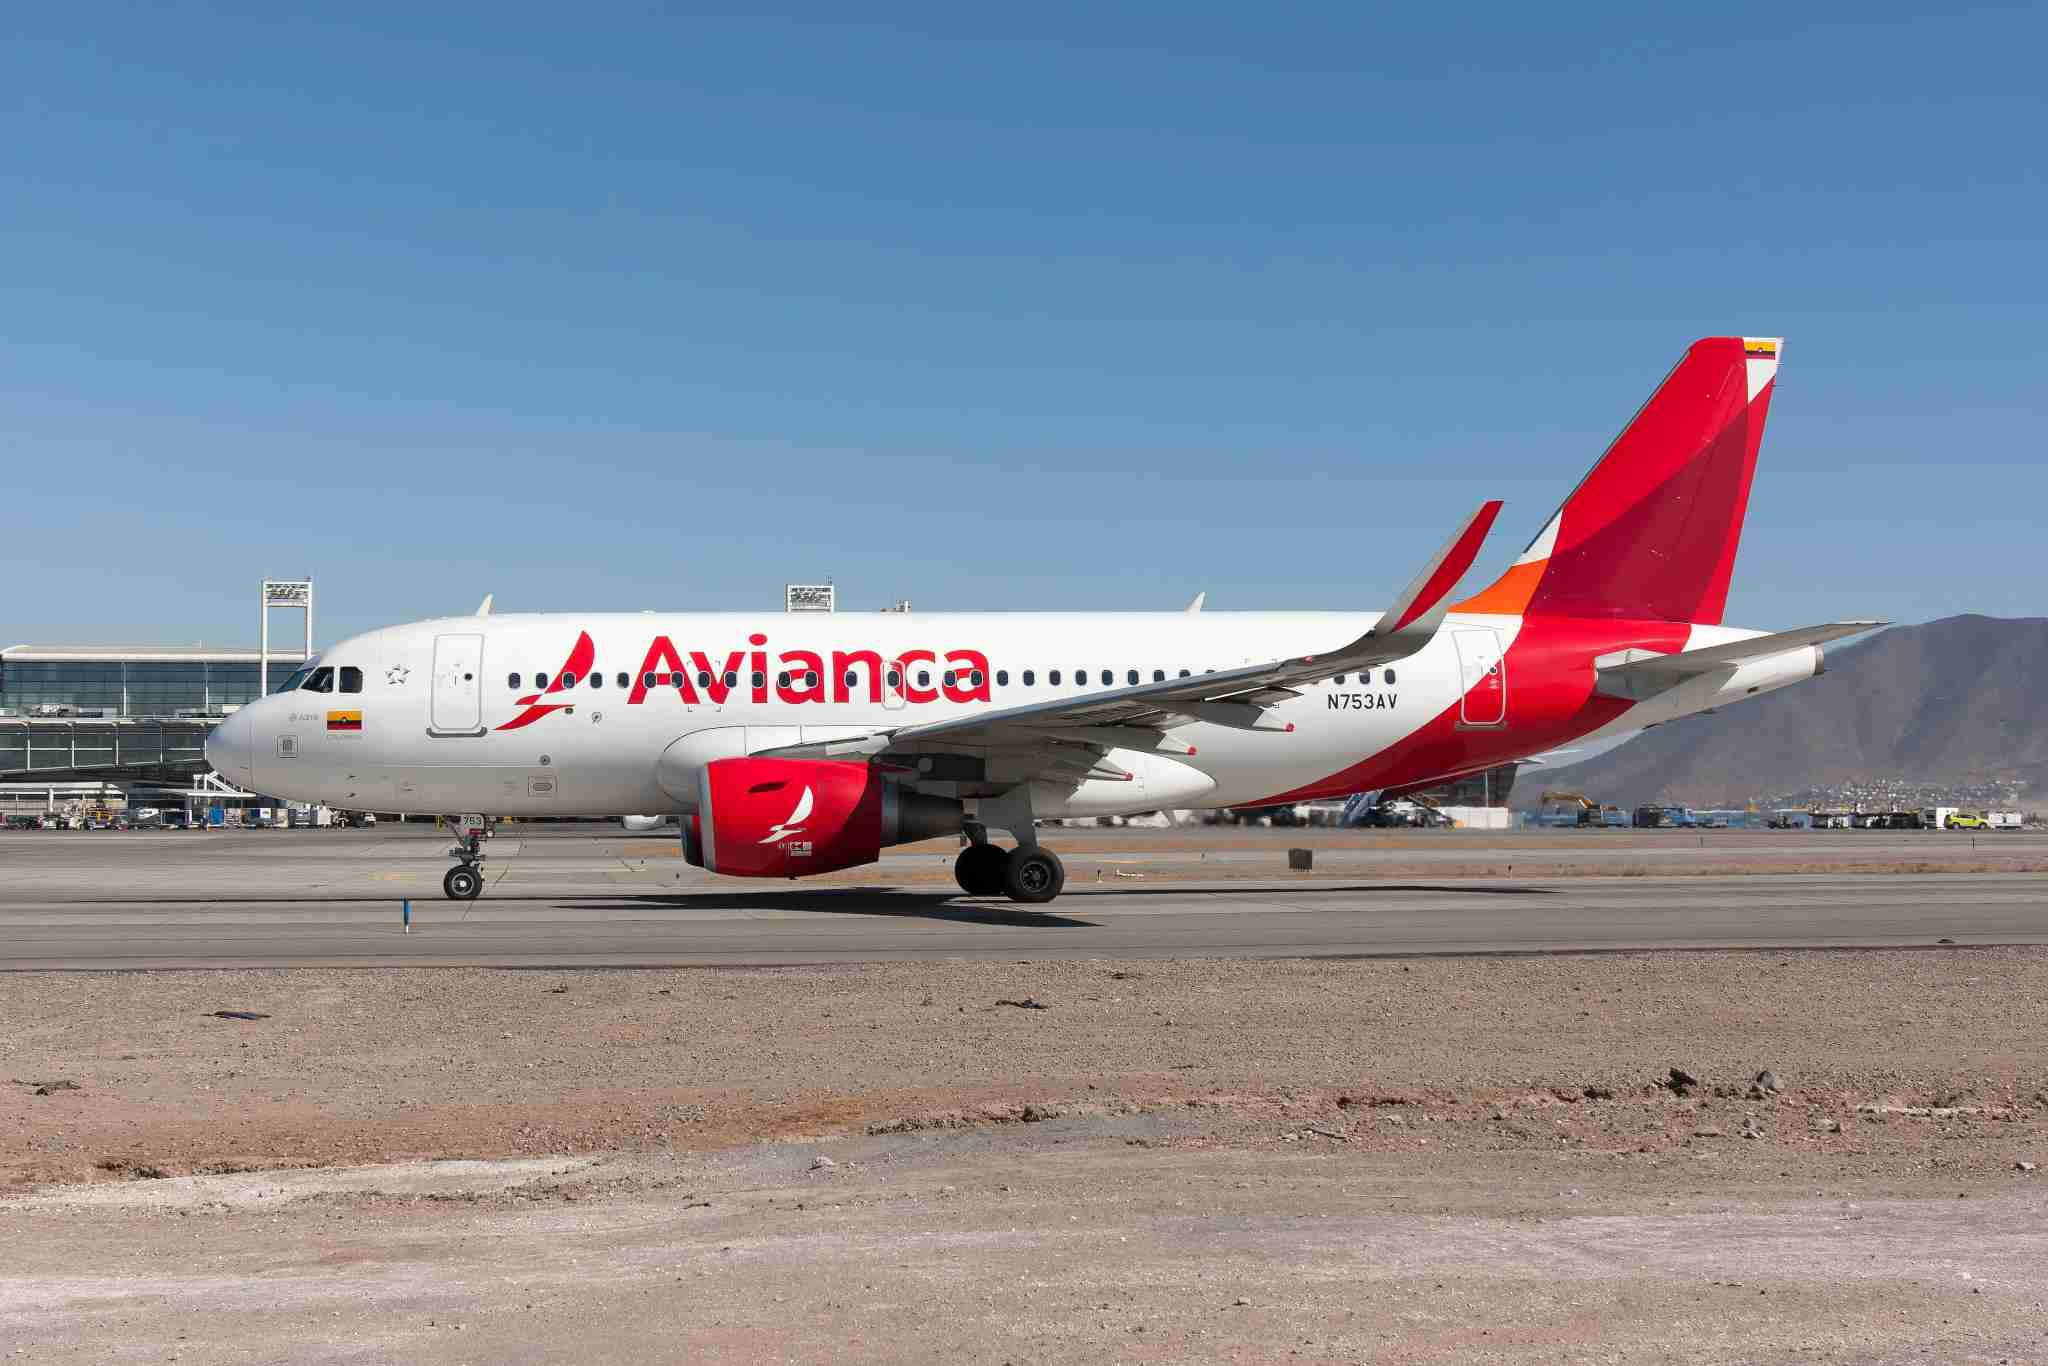 ARTURO MERINO BENITEZ AIRPORT, SANTIAGO, CHILE - 2019/03/19: An Avianca Airbus 319 taxiing at Santiago airport. (Photo by Fabrizio Gandolfo/SOPA Images/LightRocket via Getty Images)